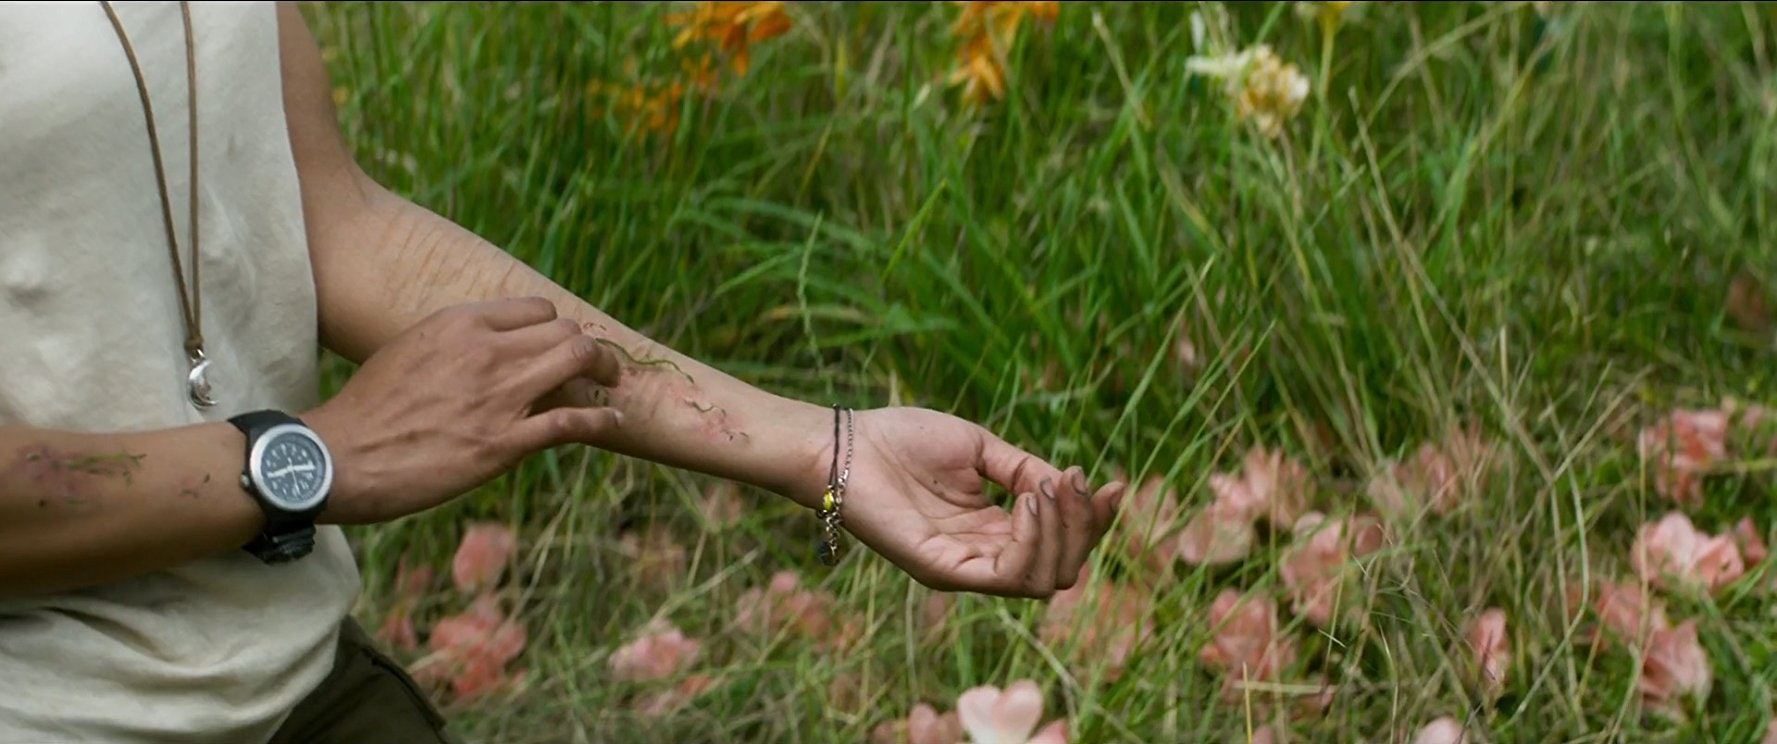 Tessa Thompson's plant arm in 'Annihilation'